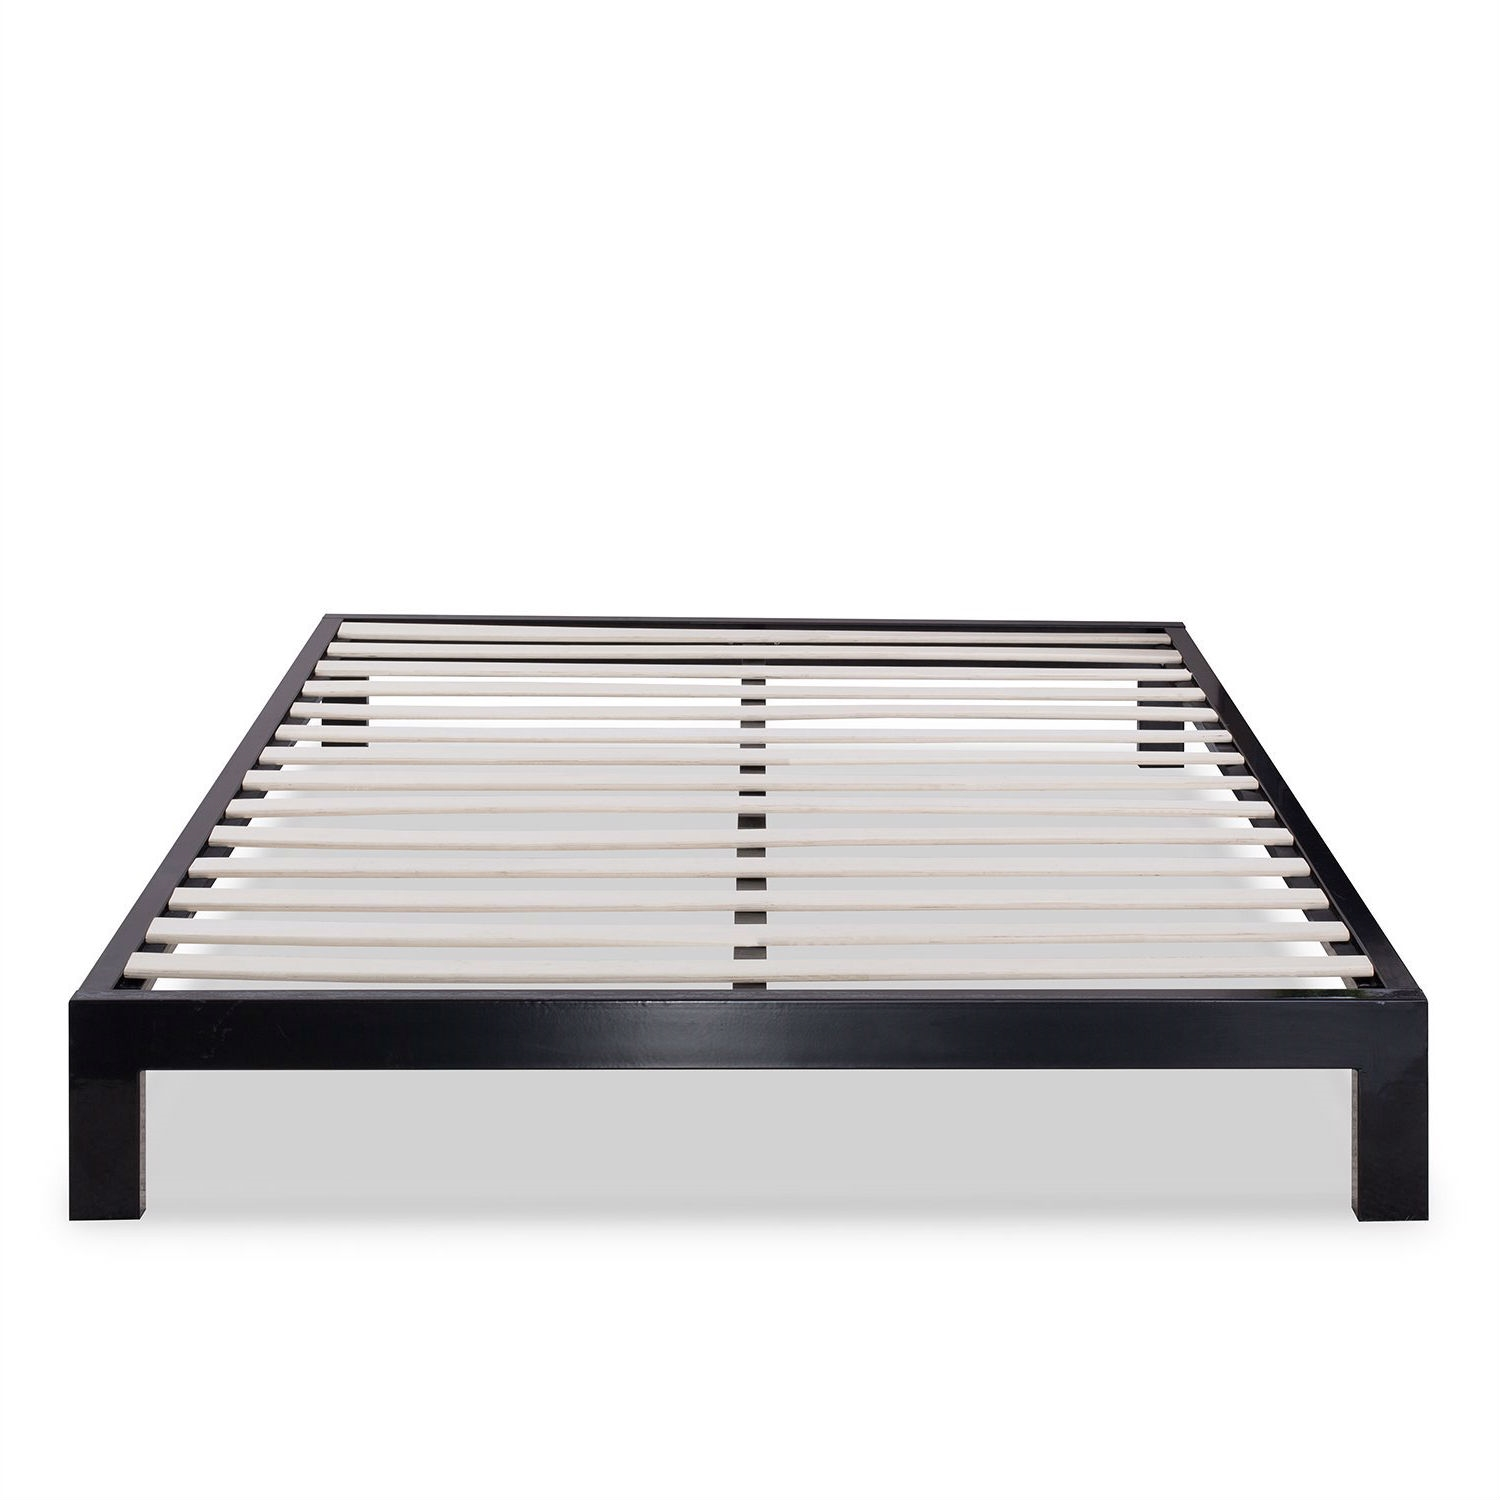 Full Size Contemporary Black Metal Platform Bed With Wooden Mattress Support Slats Fastfurnishings Com